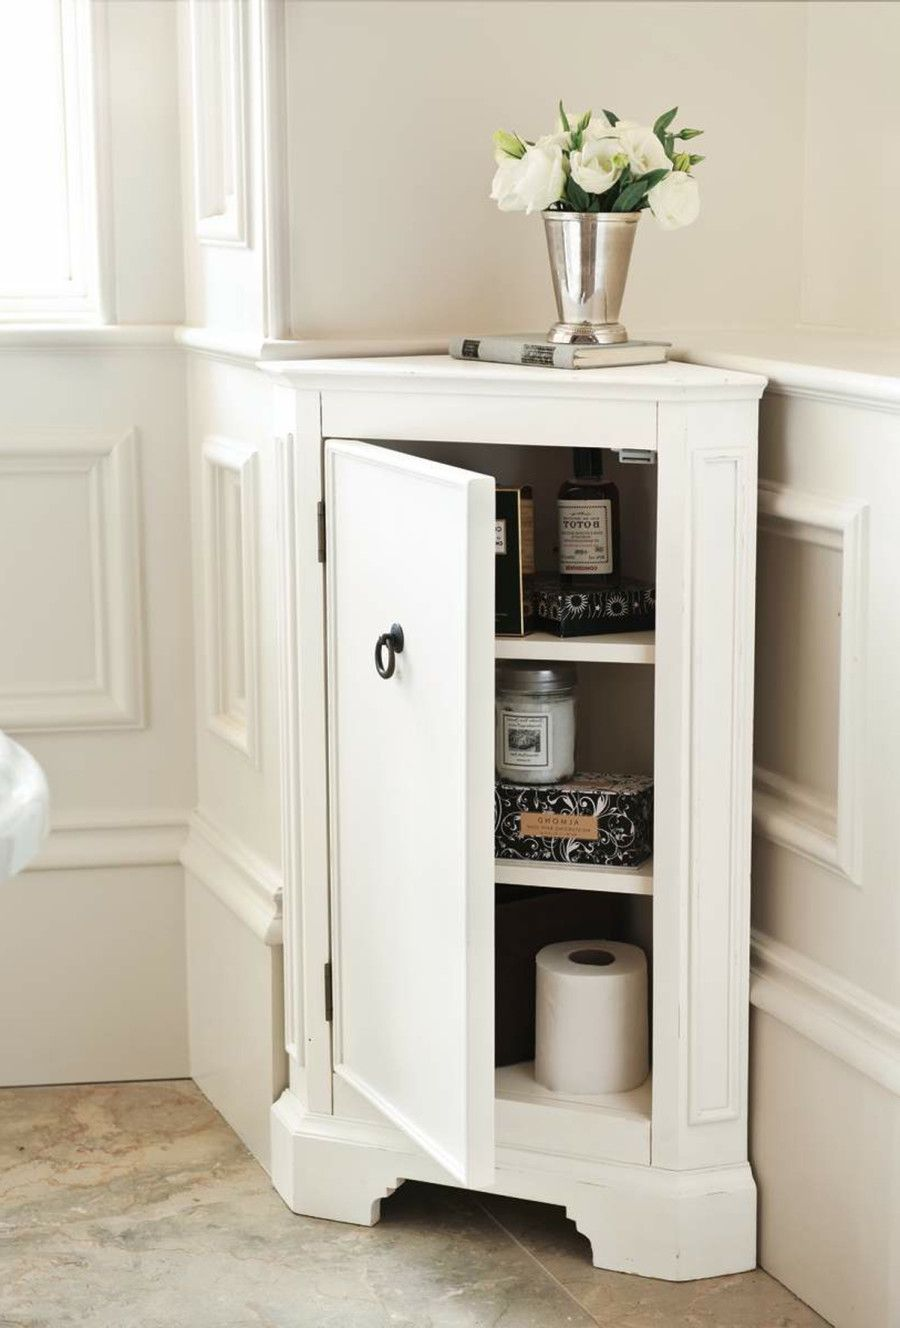 Storage ideas for small bathrooms with no cabinets flower ...